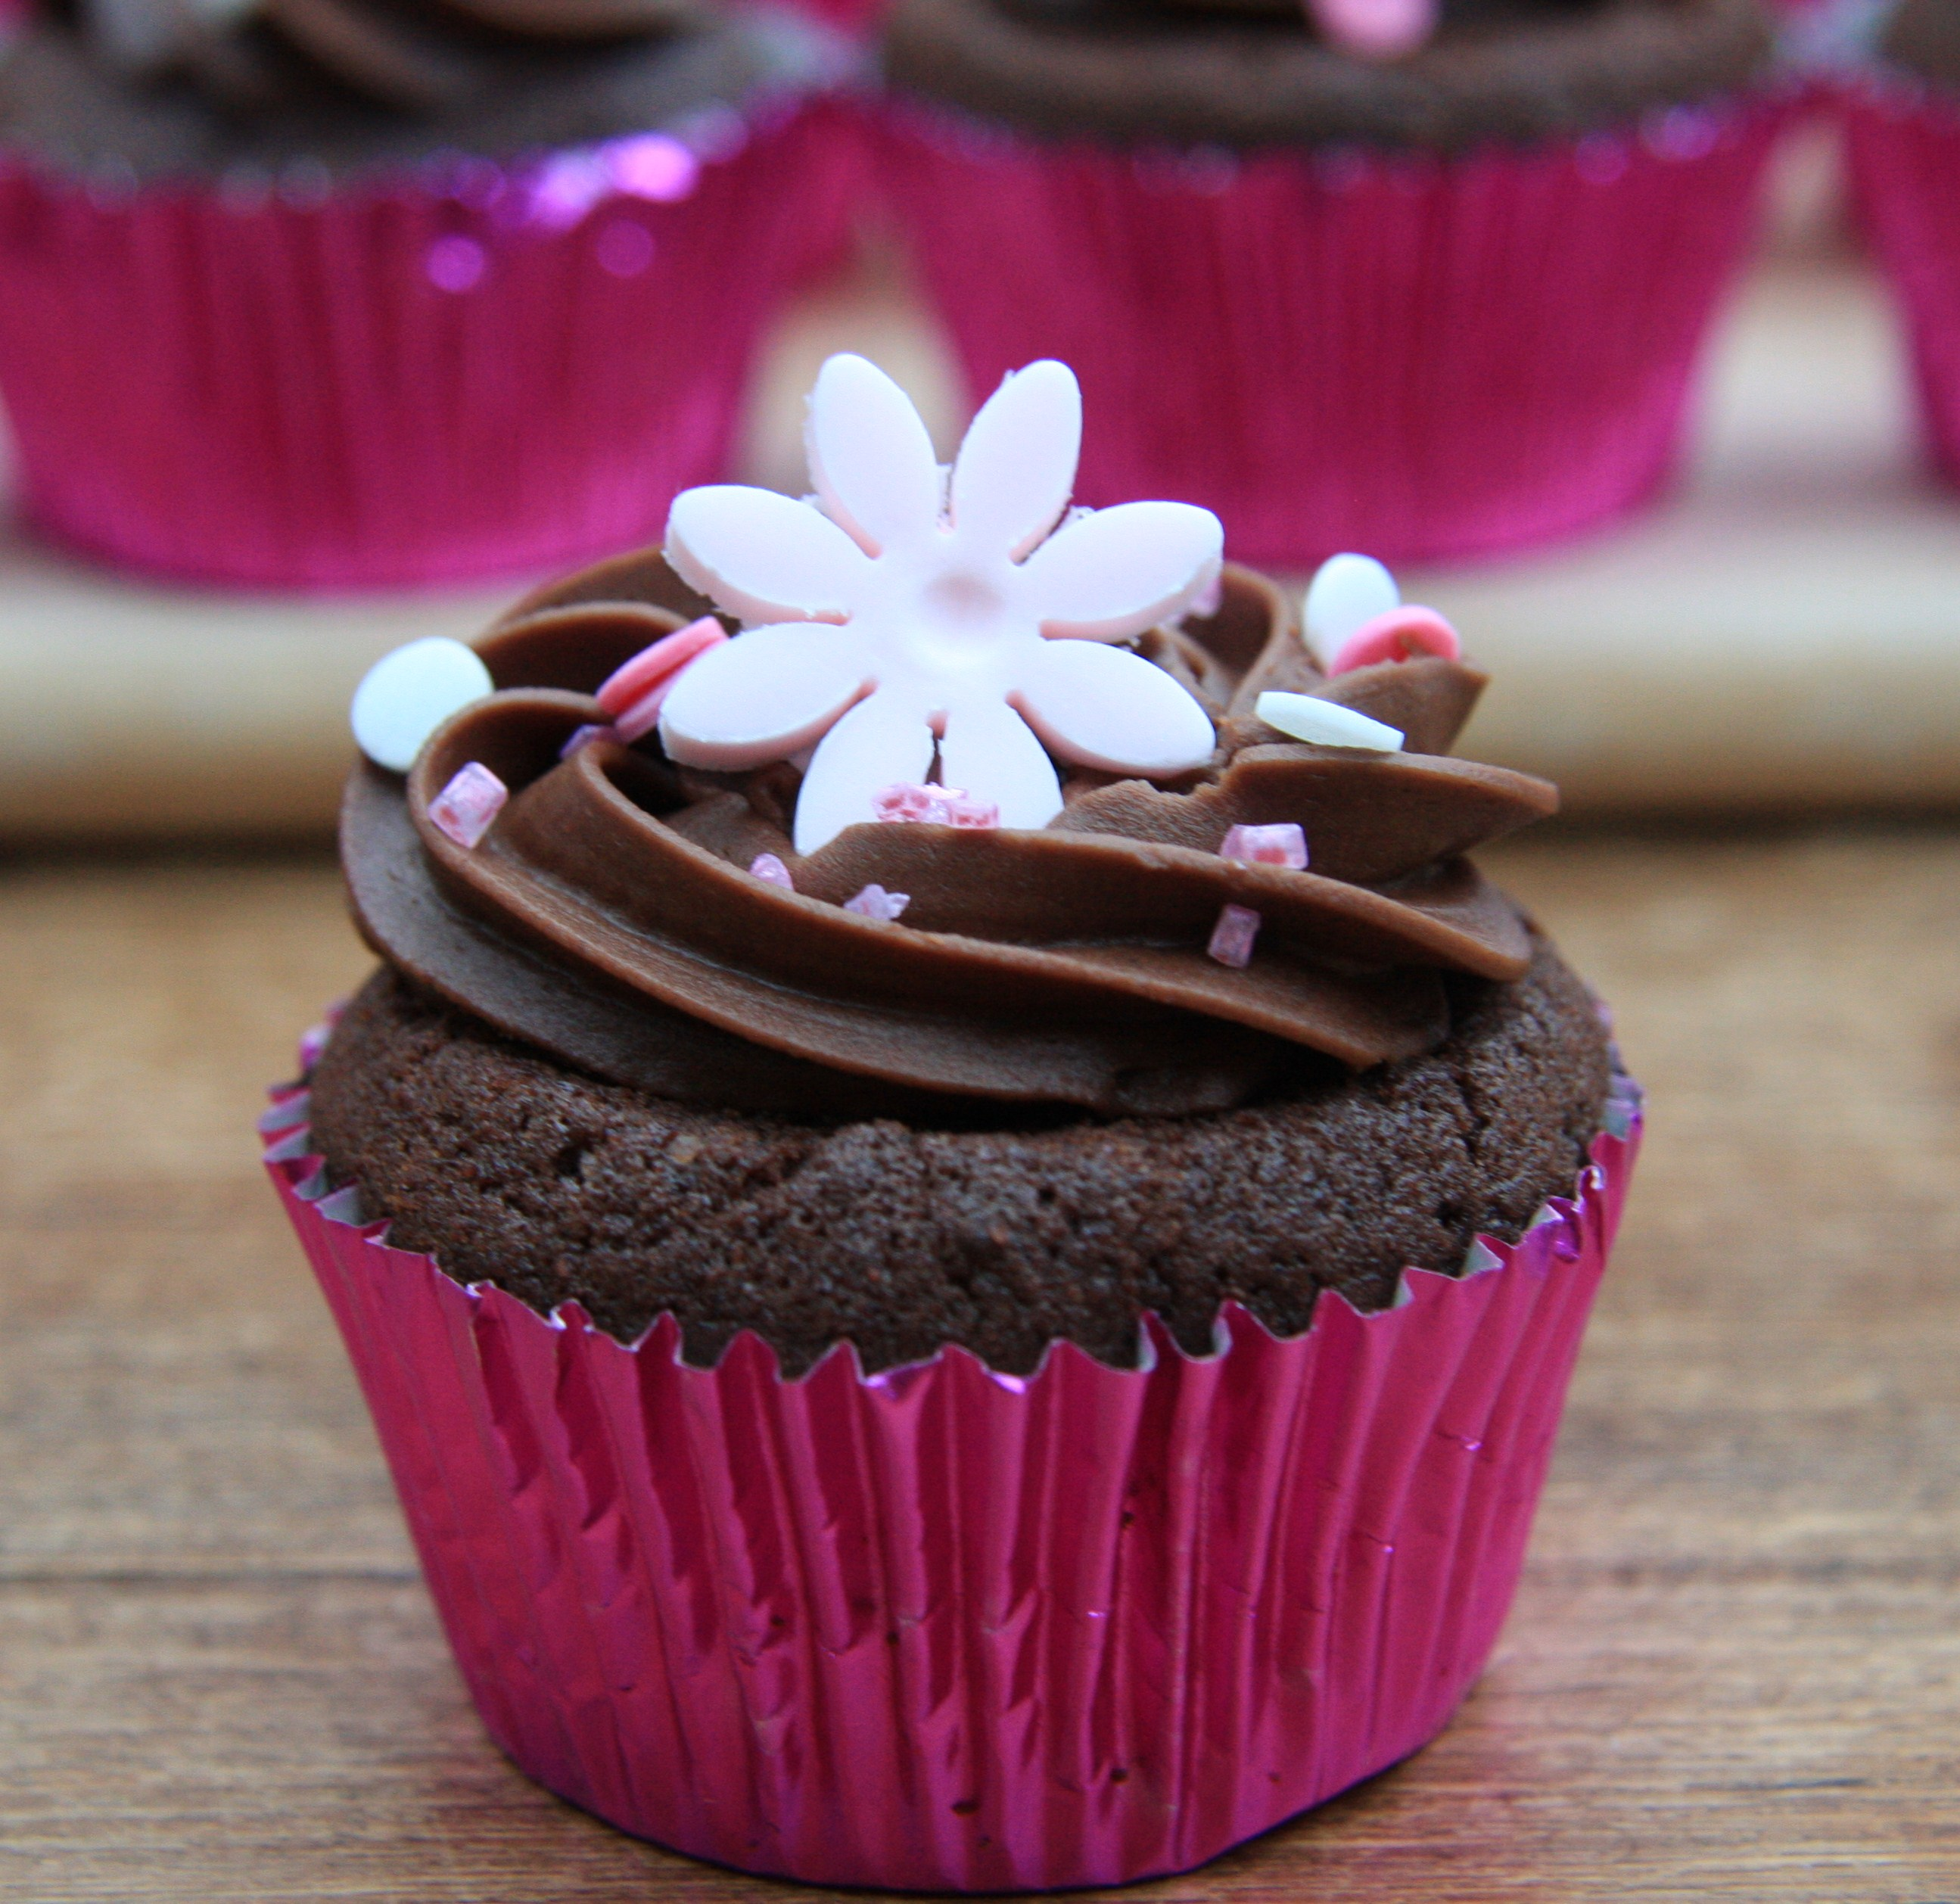 Outstanding Cupcakes with Pink Flowers 2590 x 2516 · 1000 kB · jpeg